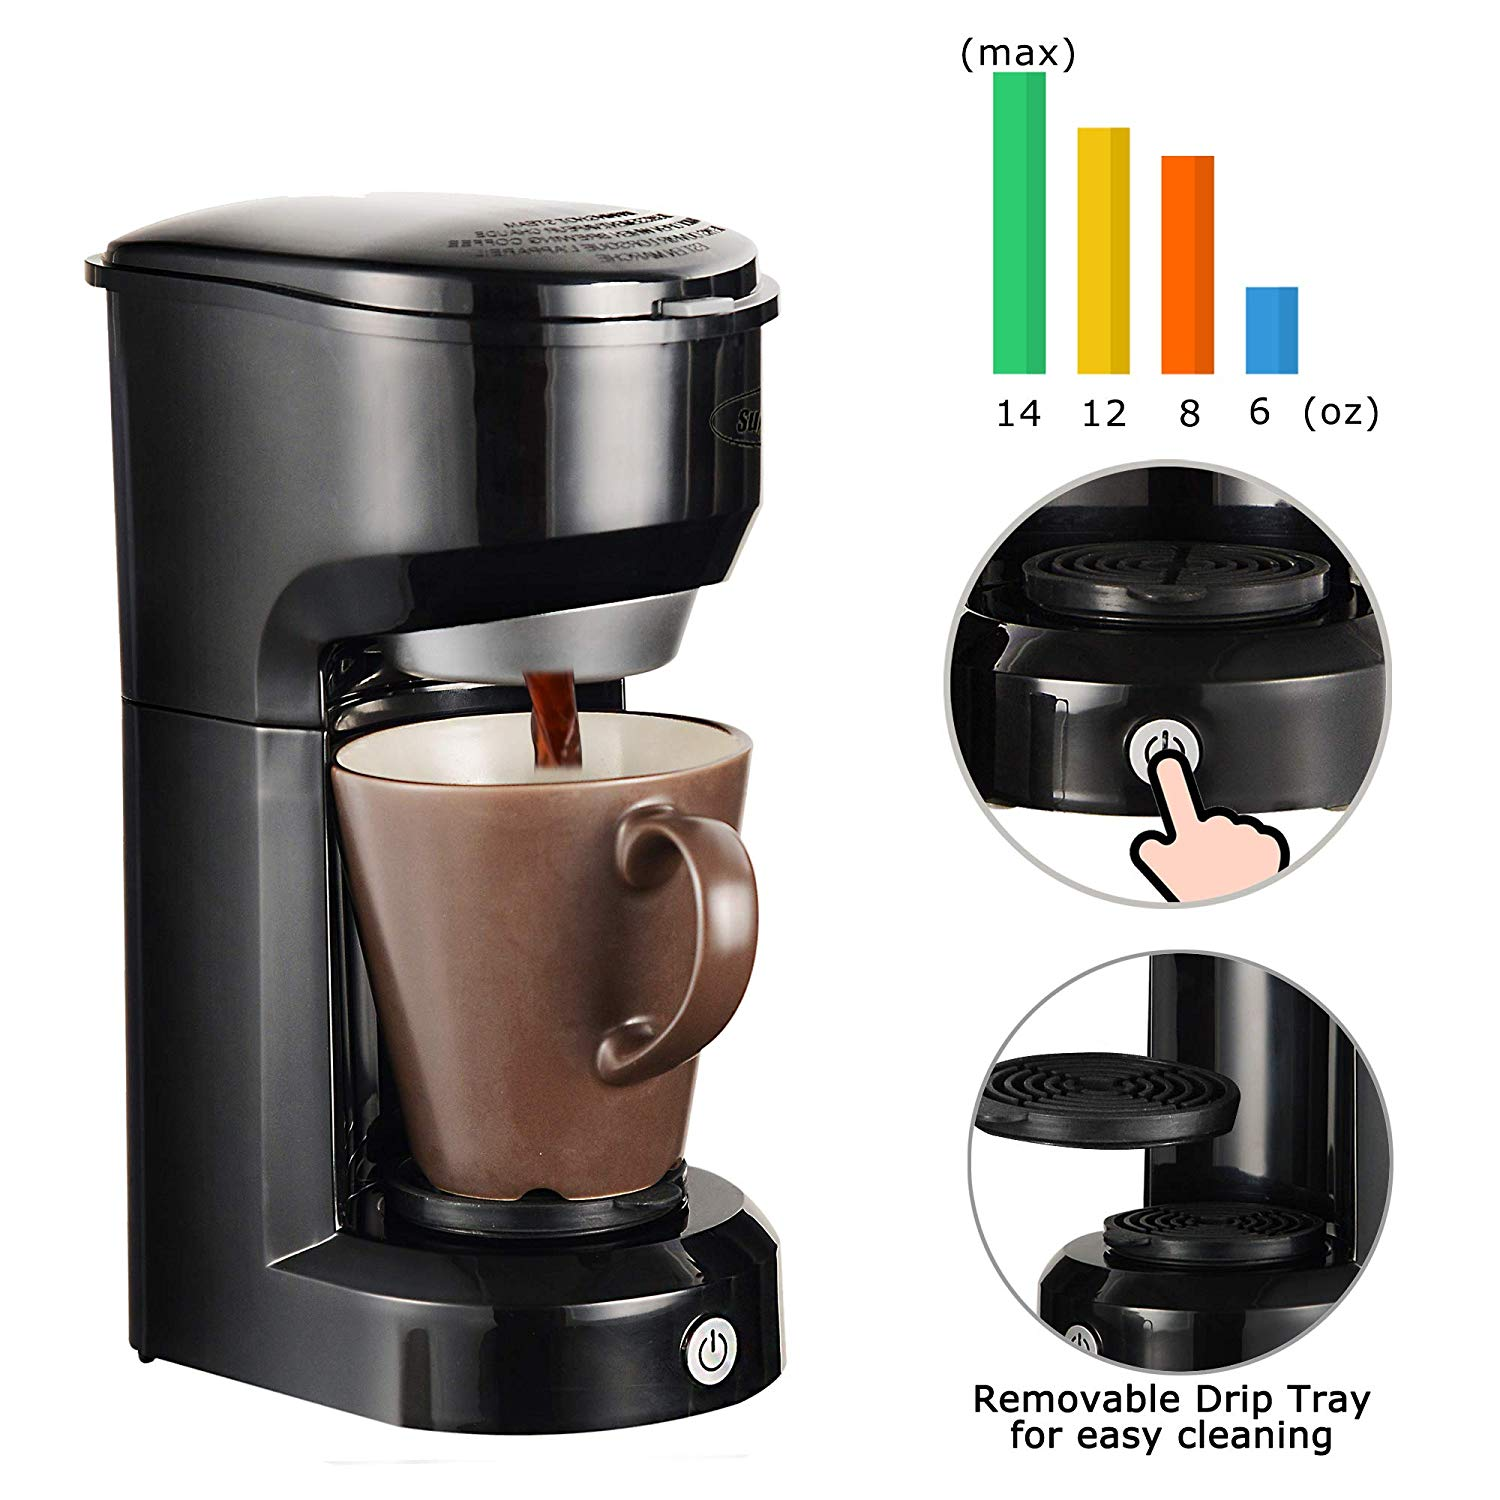 Single Serve Coffee Maker Brewer for Single Cup, K-Cup Coffeemaker With Permanent Filter, 6oz to 14oz Mug, One-touch Control Button with Illumination, Black